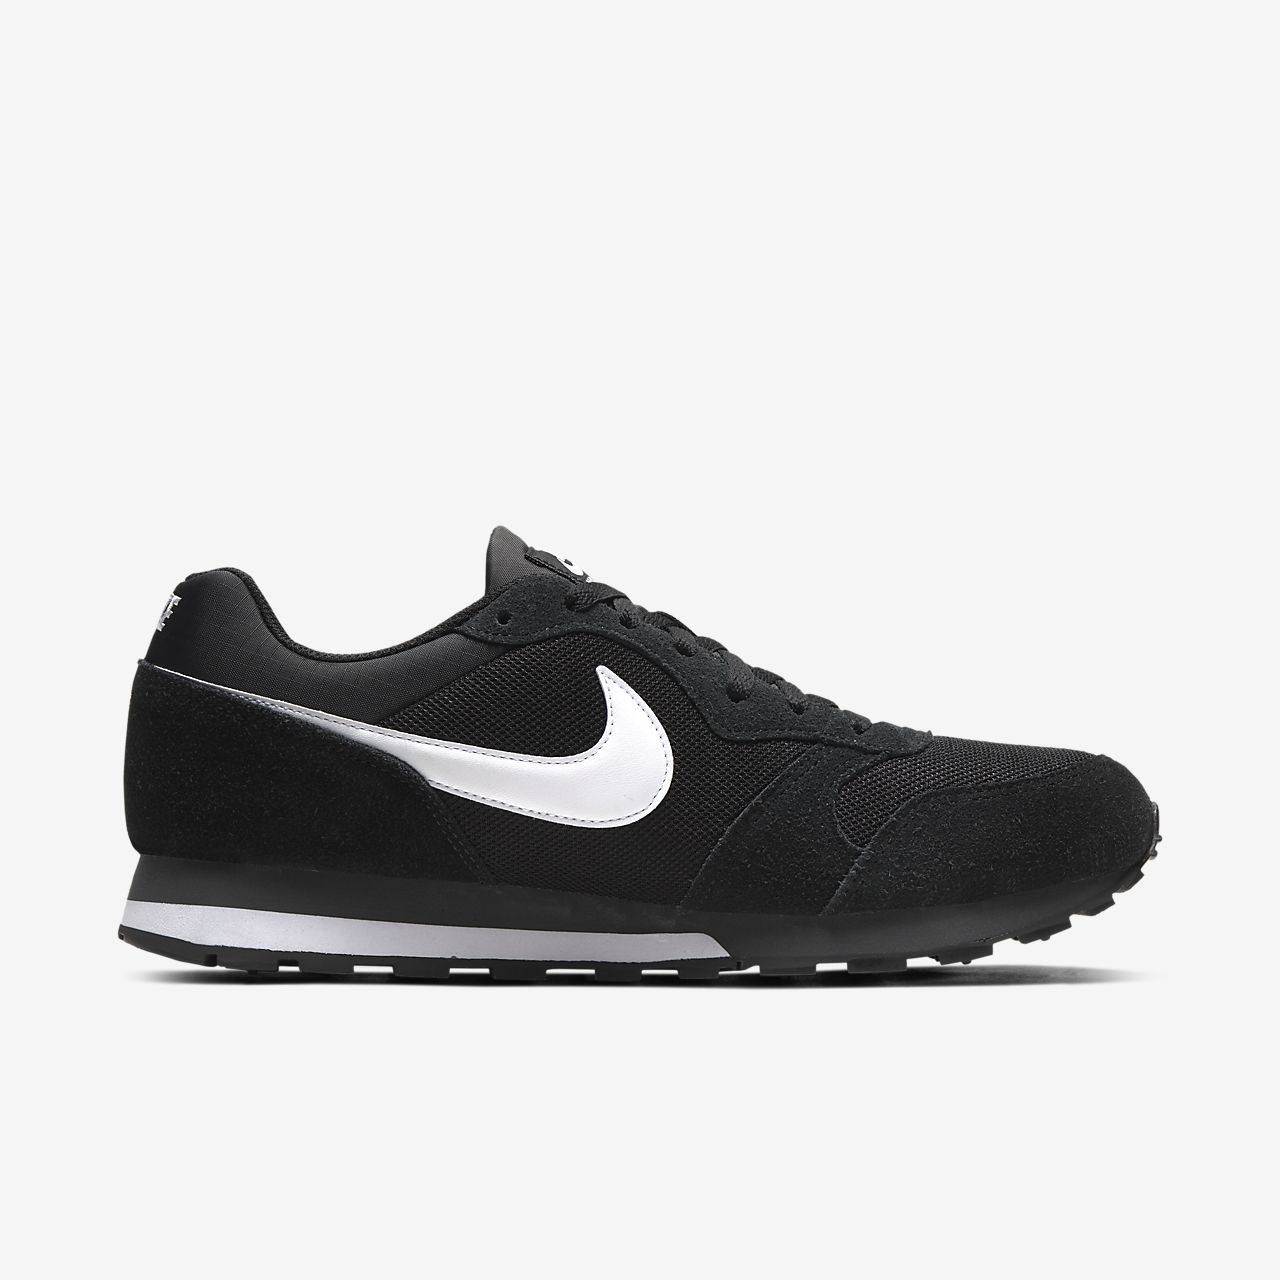 11383df8931 Nike MD Runner 2 Men s Shoe. Nike.com AU